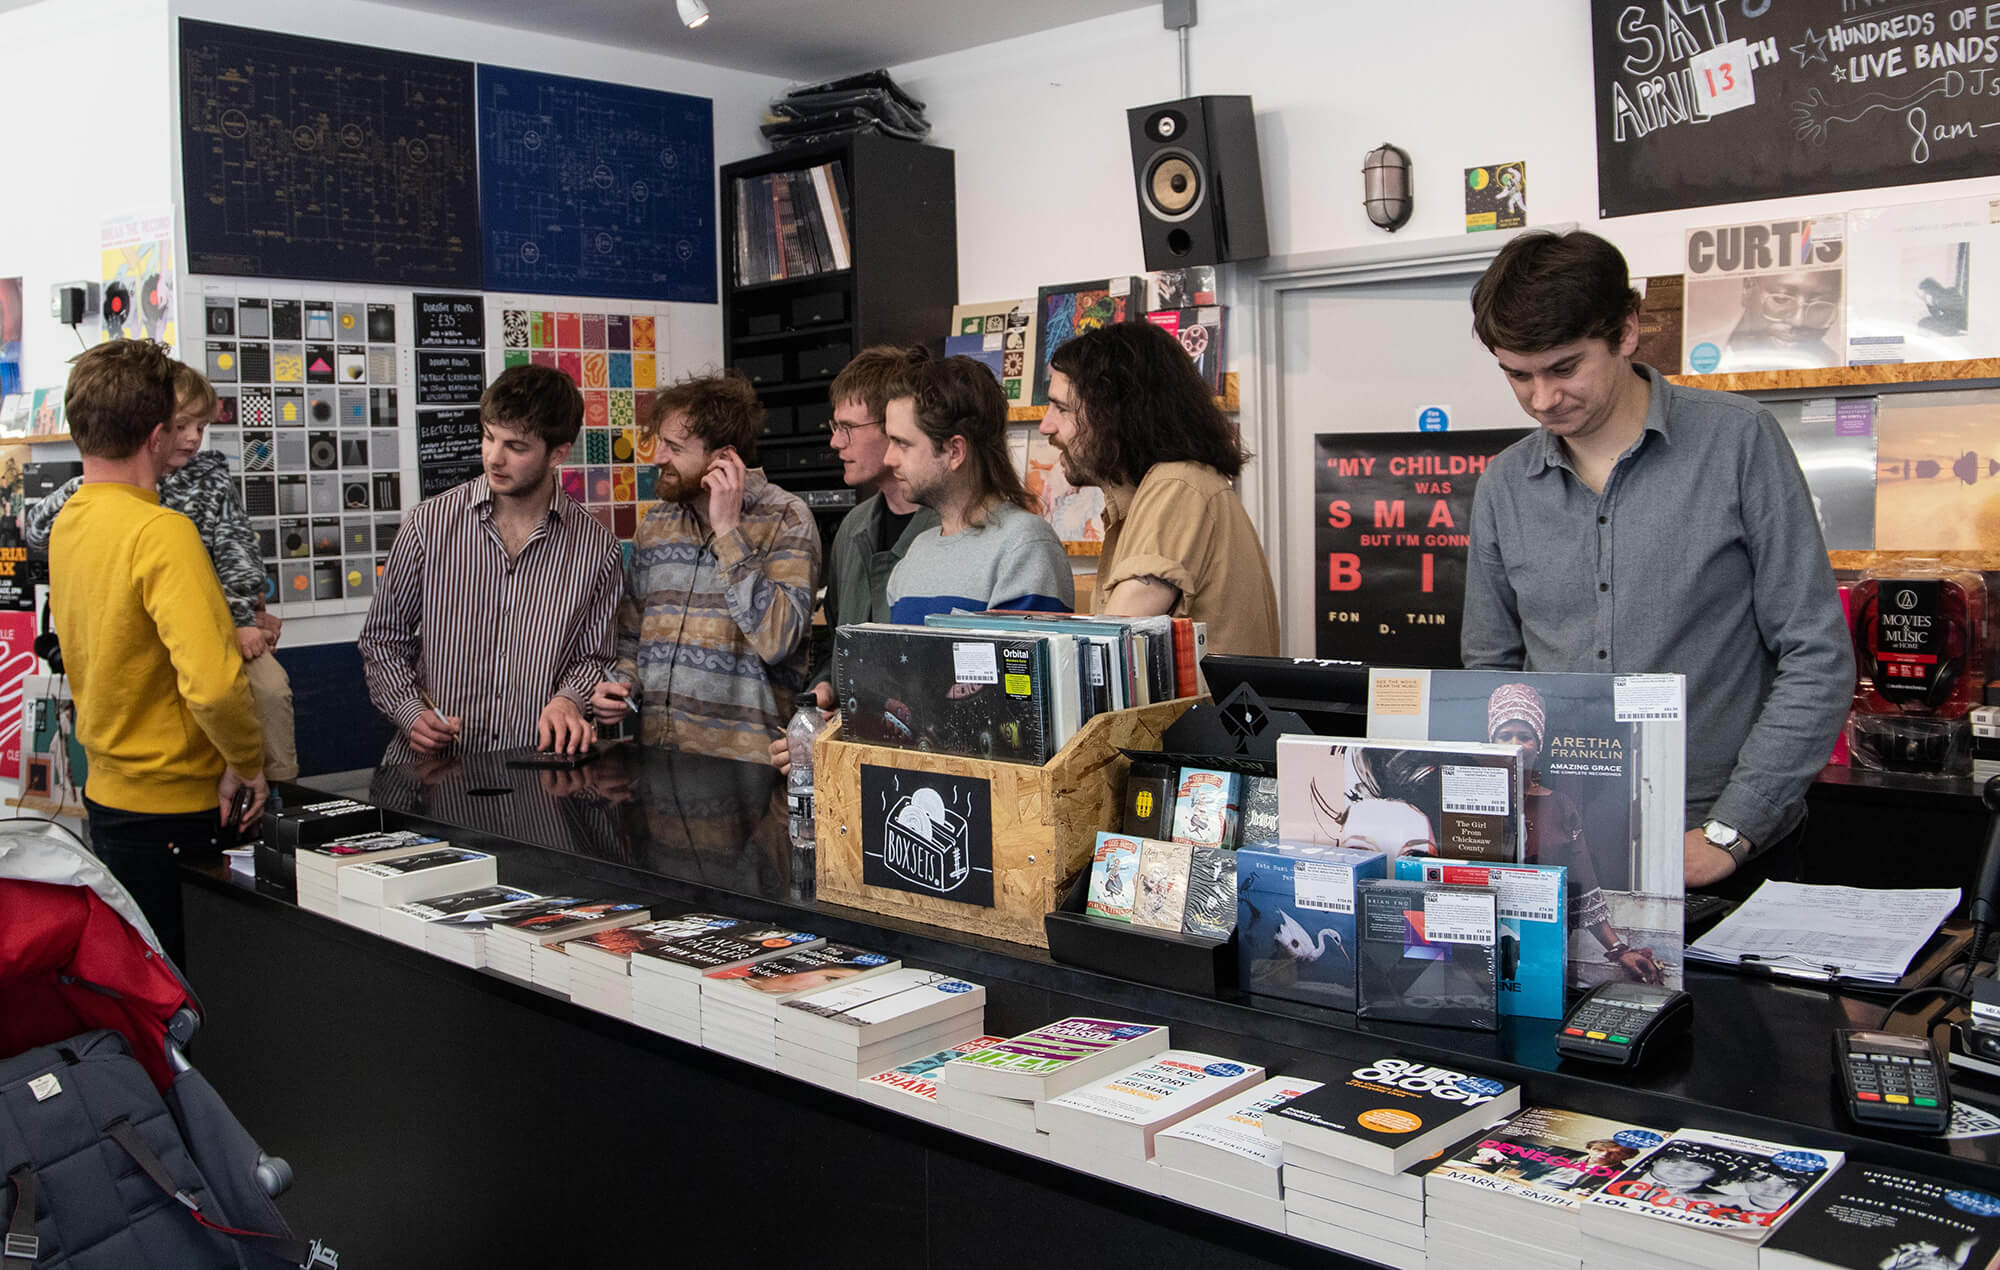 Fontaines DC signing records at Rough Trade